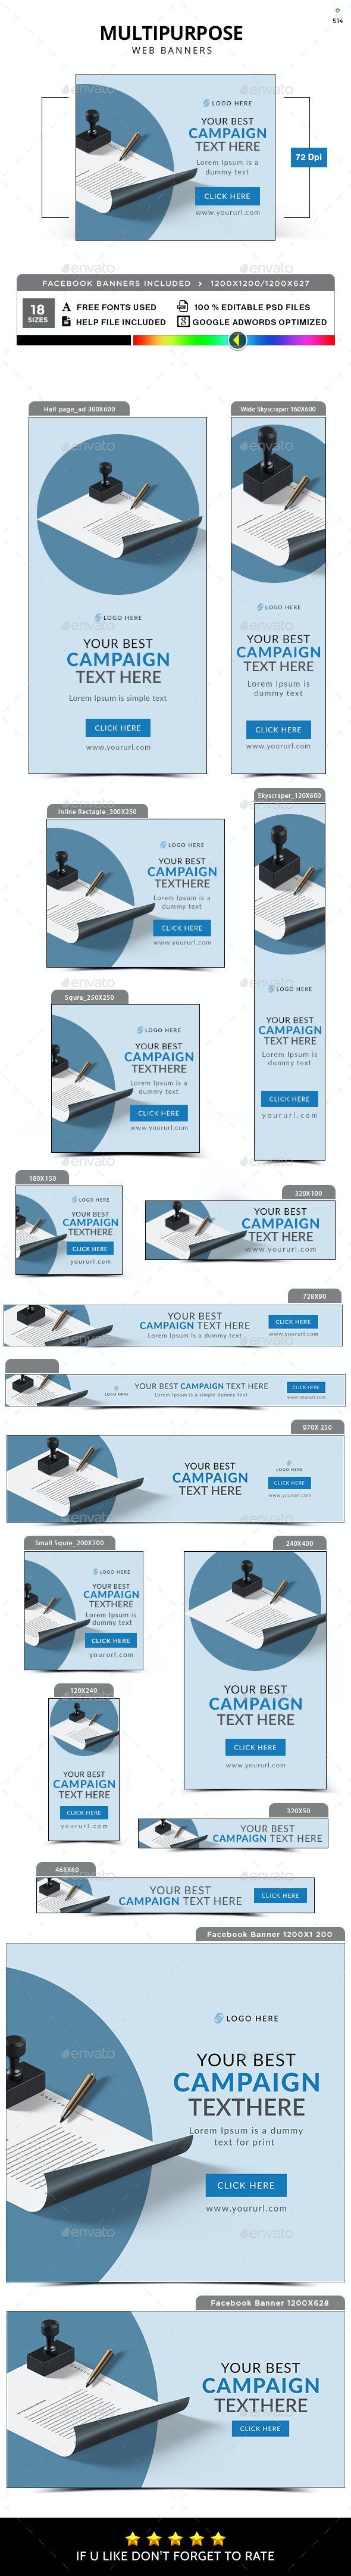 Multipurpose Banner Set - Banners & Ads Web Elements